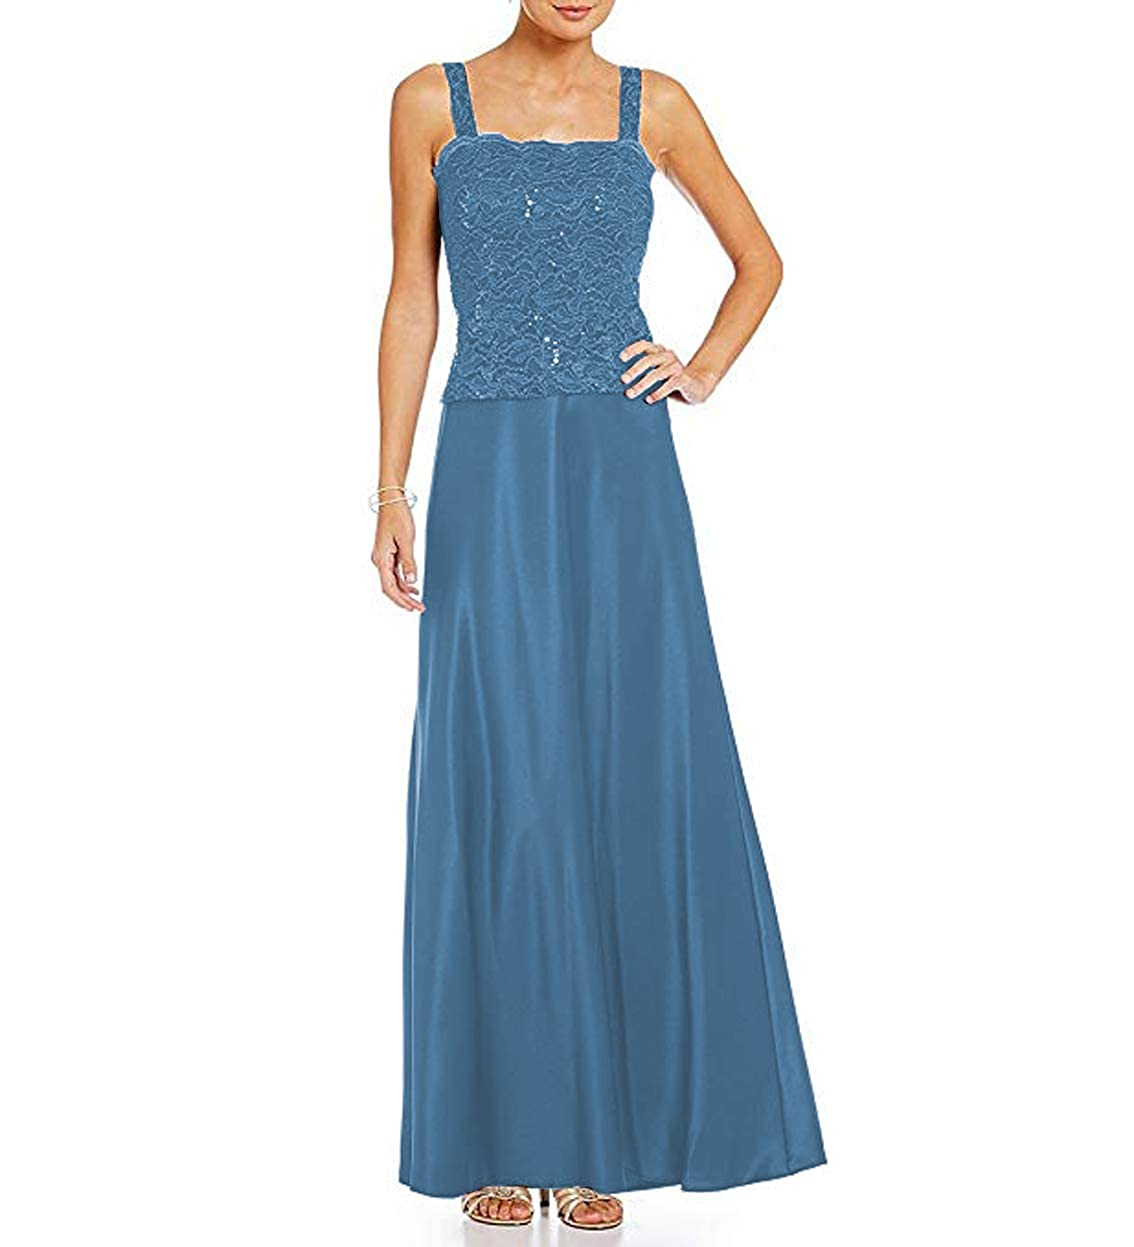 bluee Women's Satin Ankle Length Mother of The Bride Dresses with Lace Jacket Plus Size 2 Piece